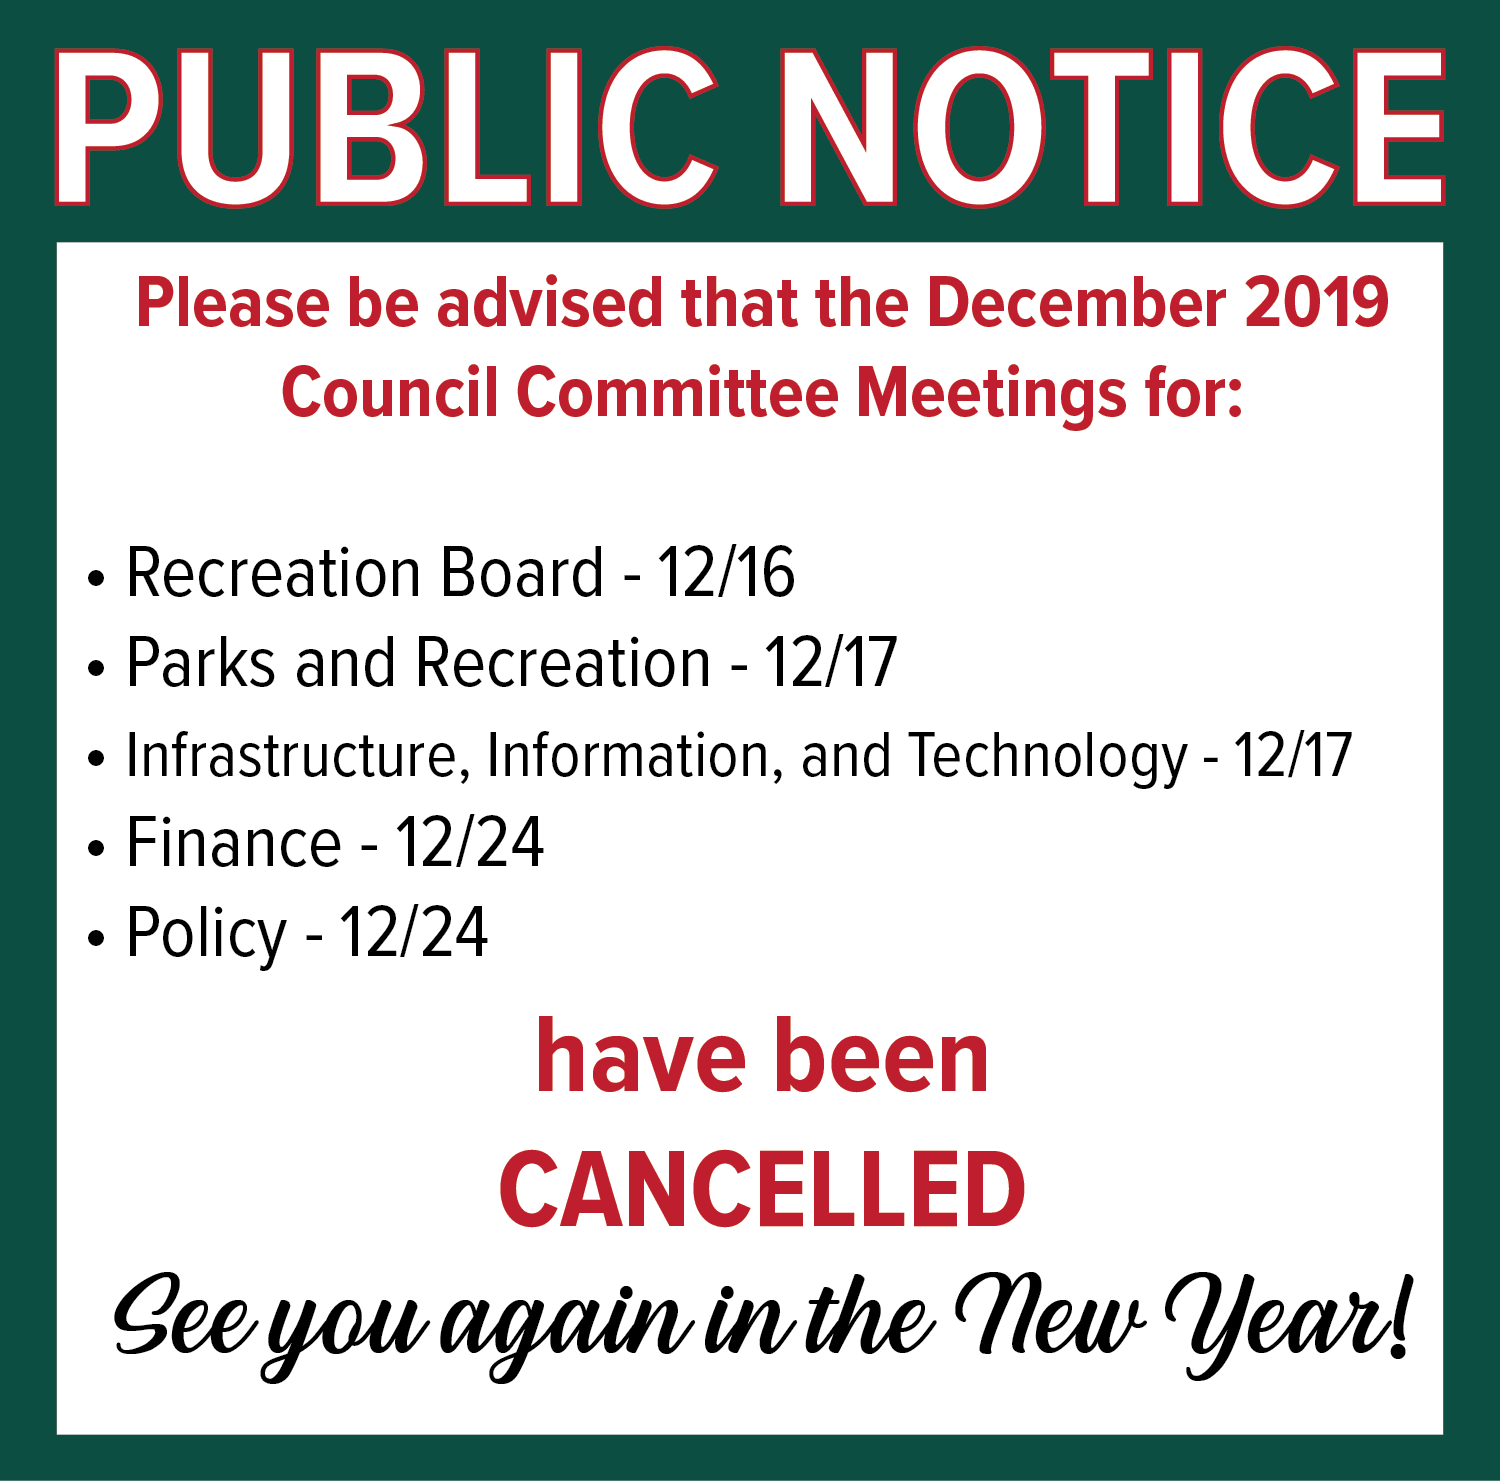 December 2019 Meeting Cancel